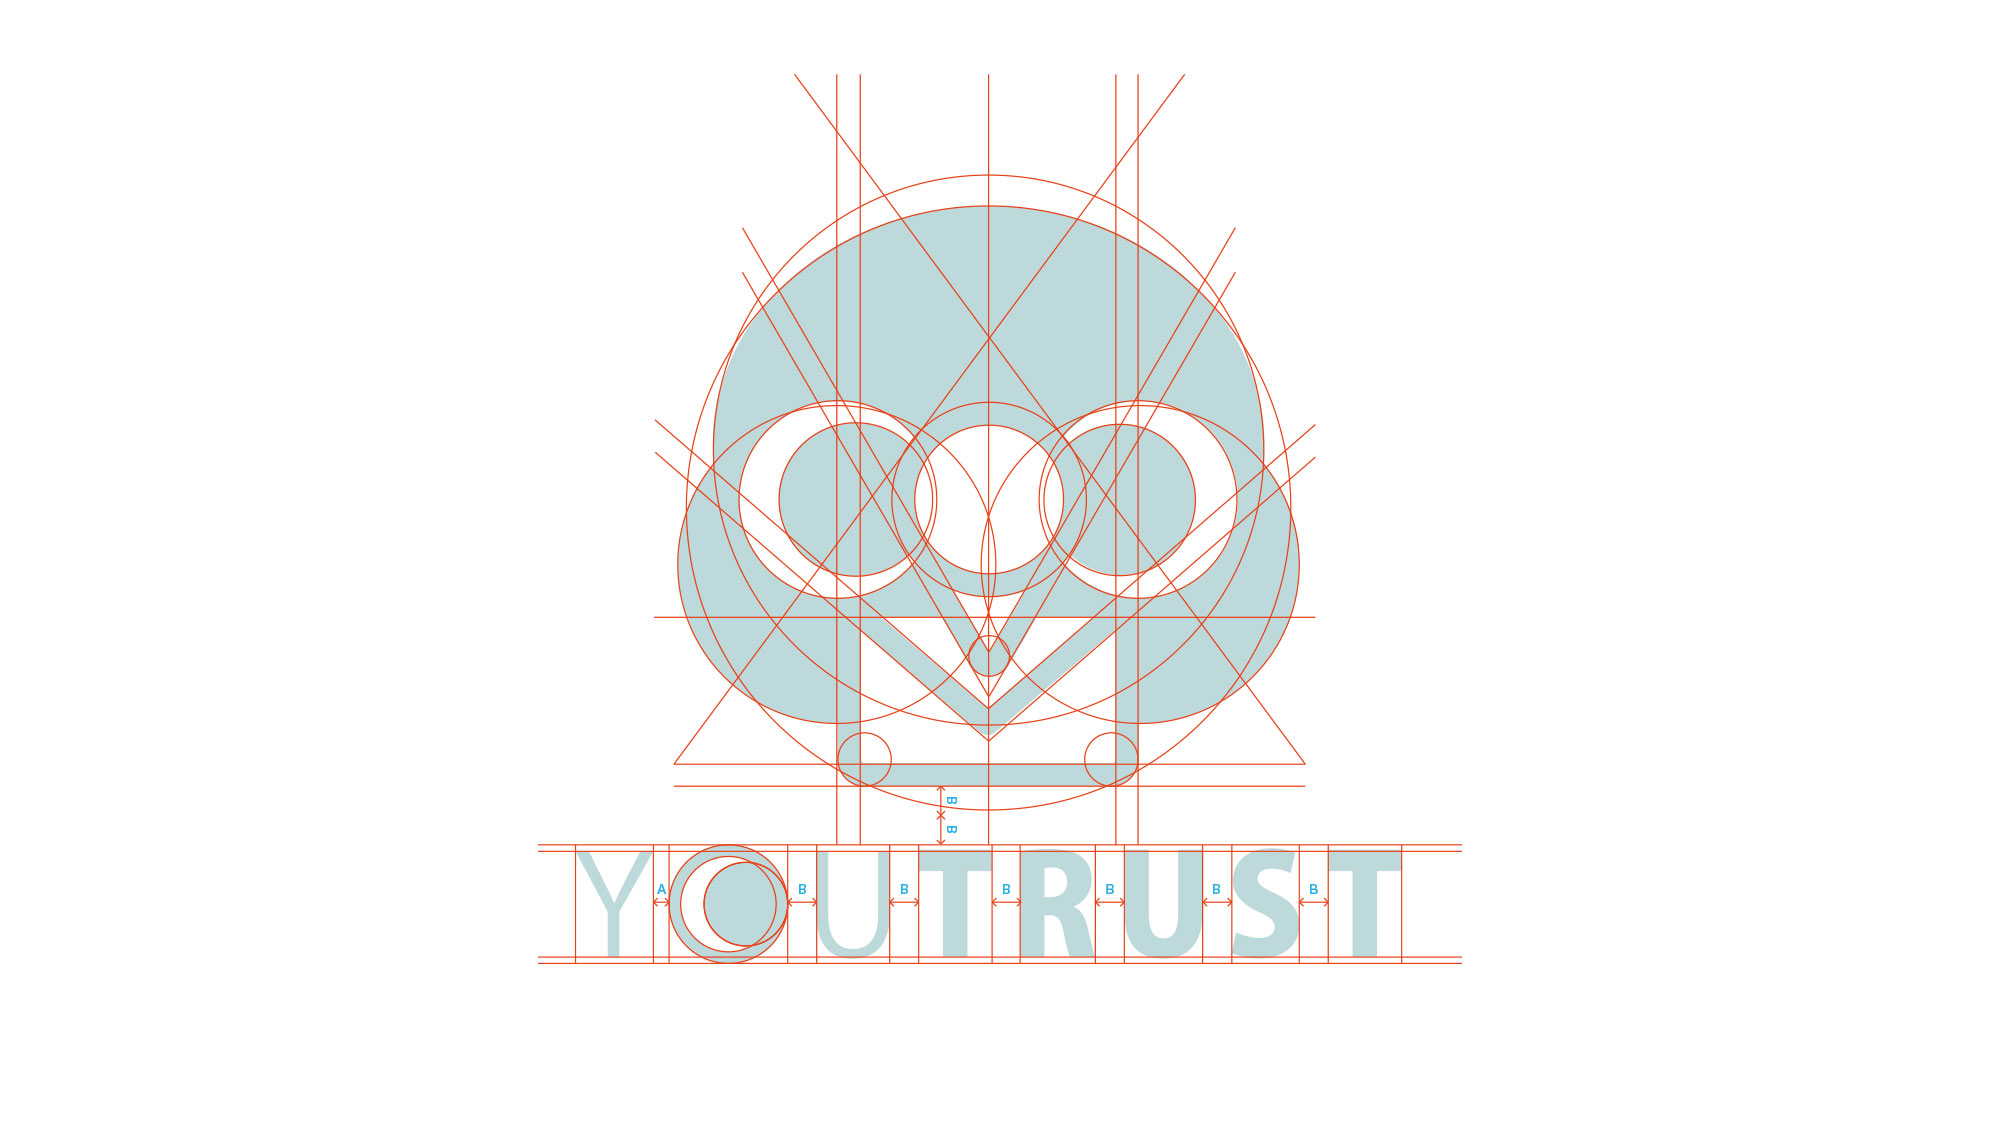 youtrust_guide_1125